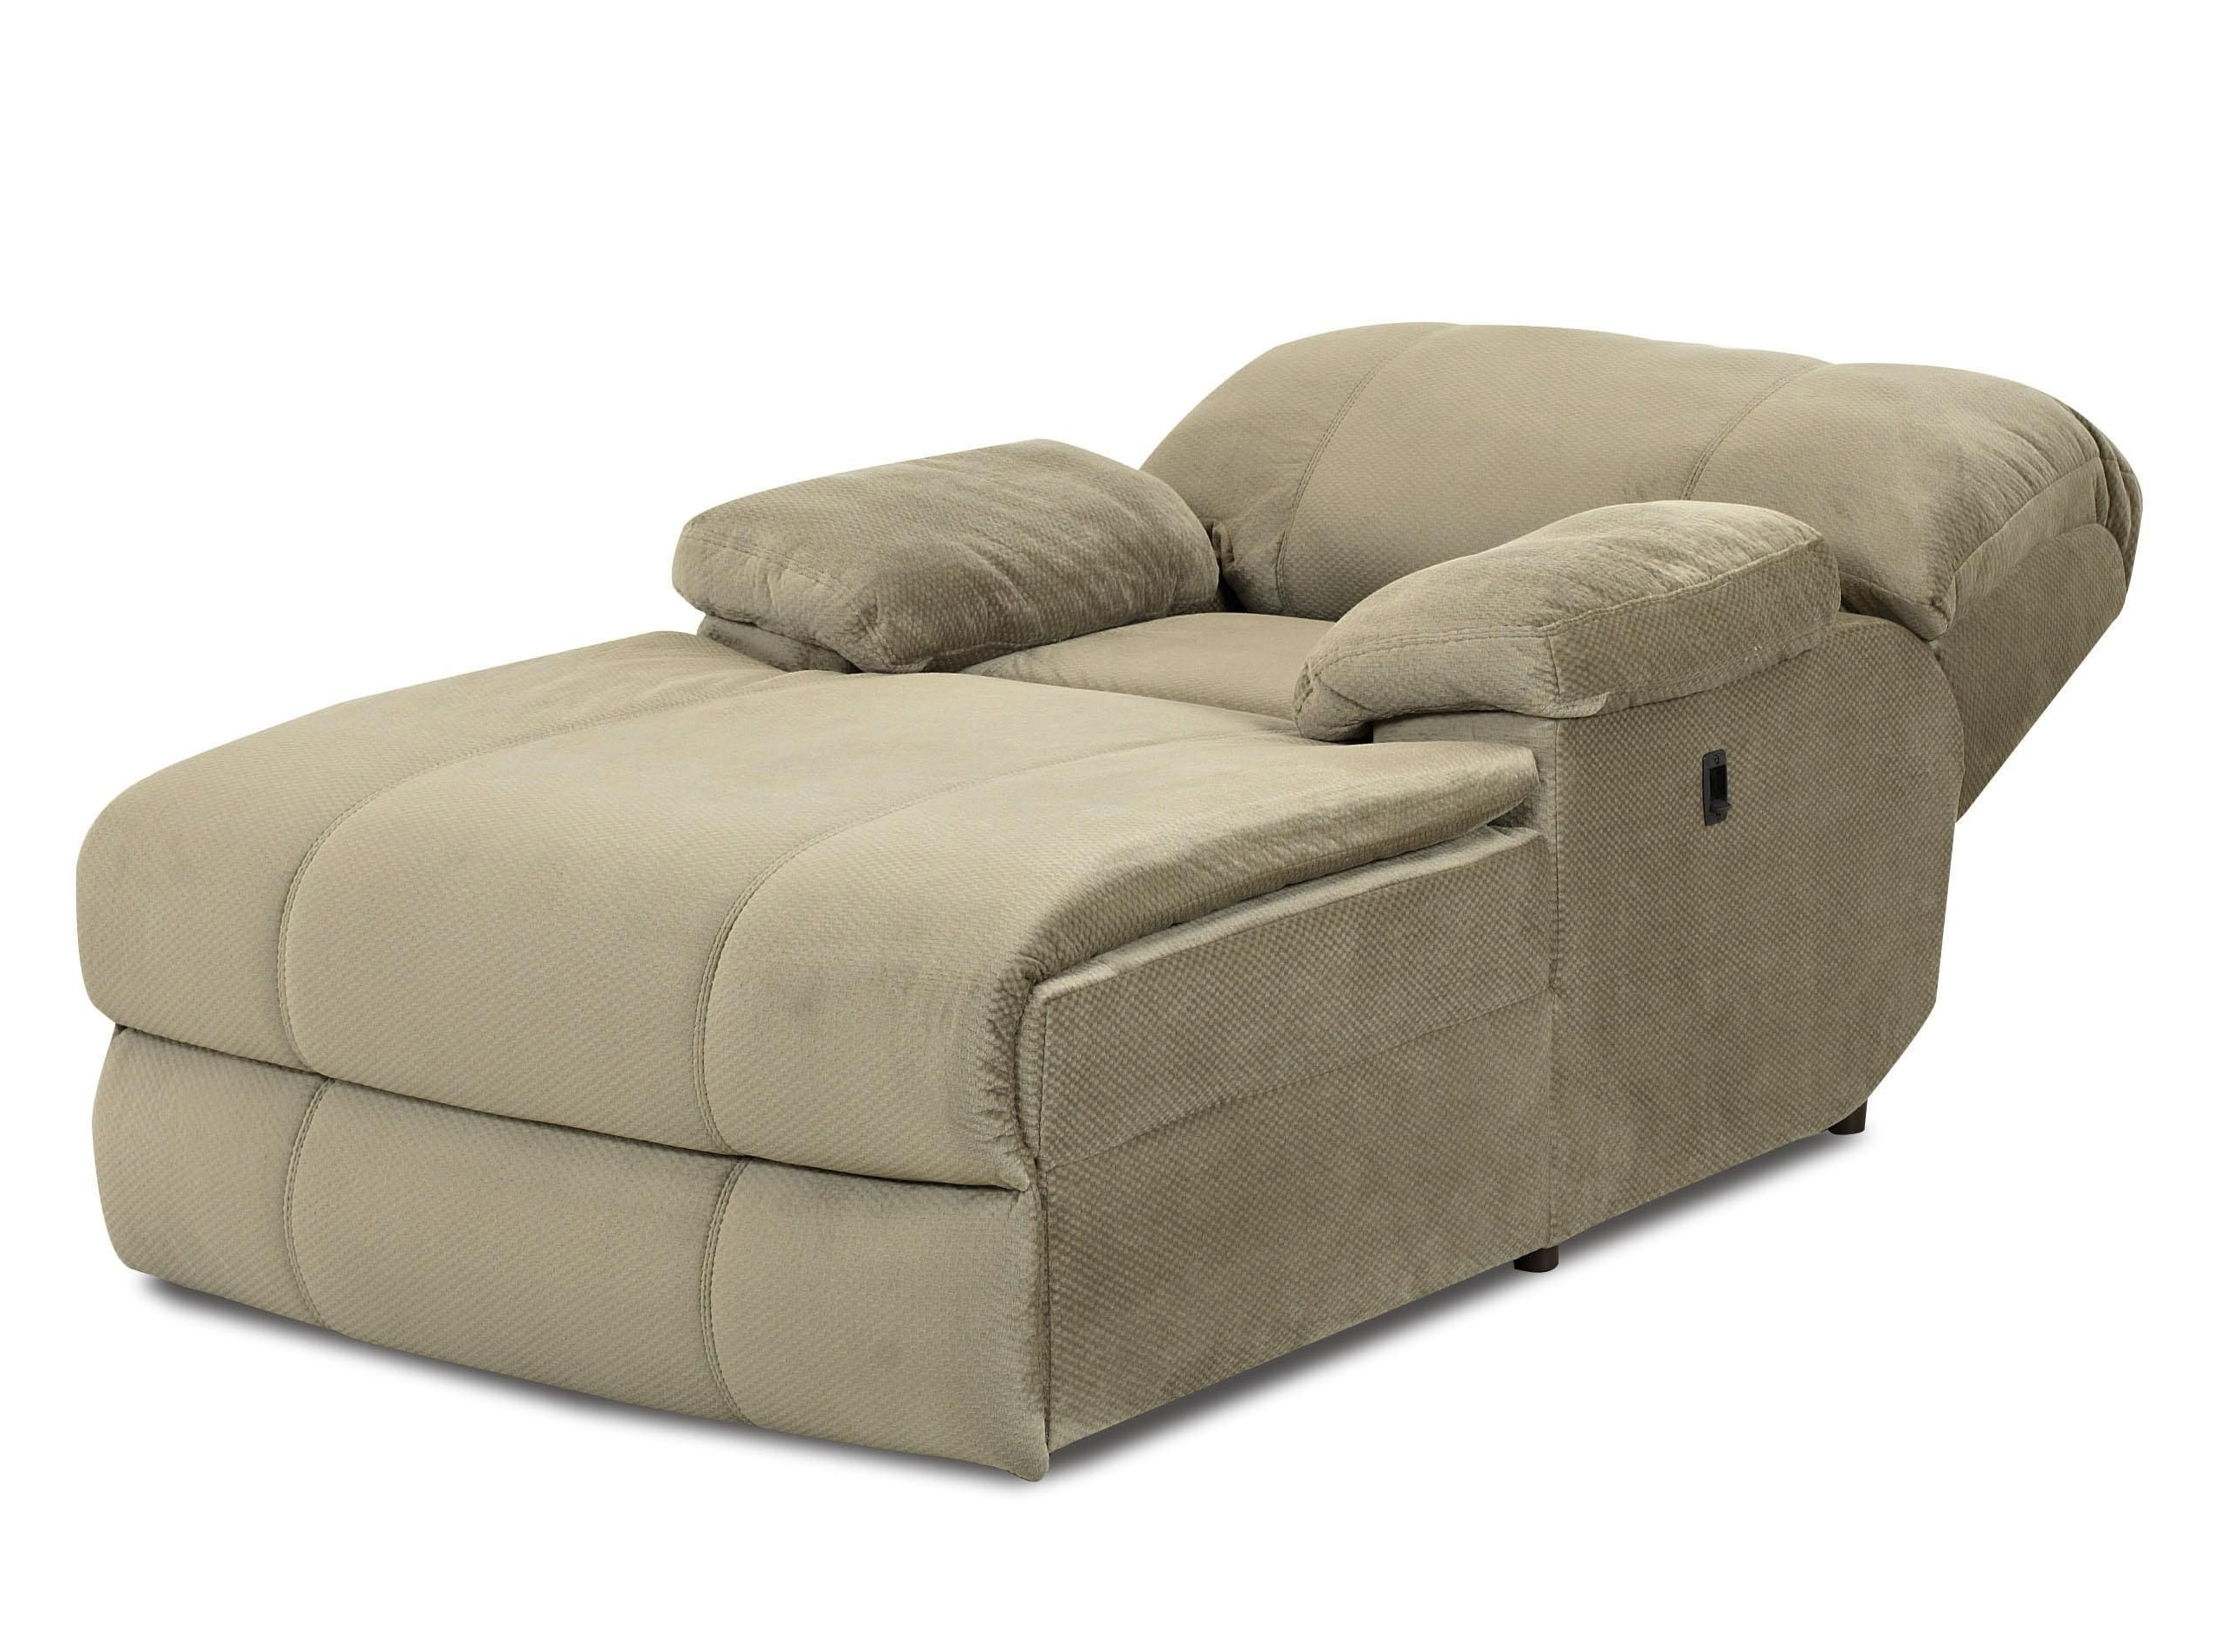 2018 Indoor Oversized Chaise Lounge (View 1 of 15)